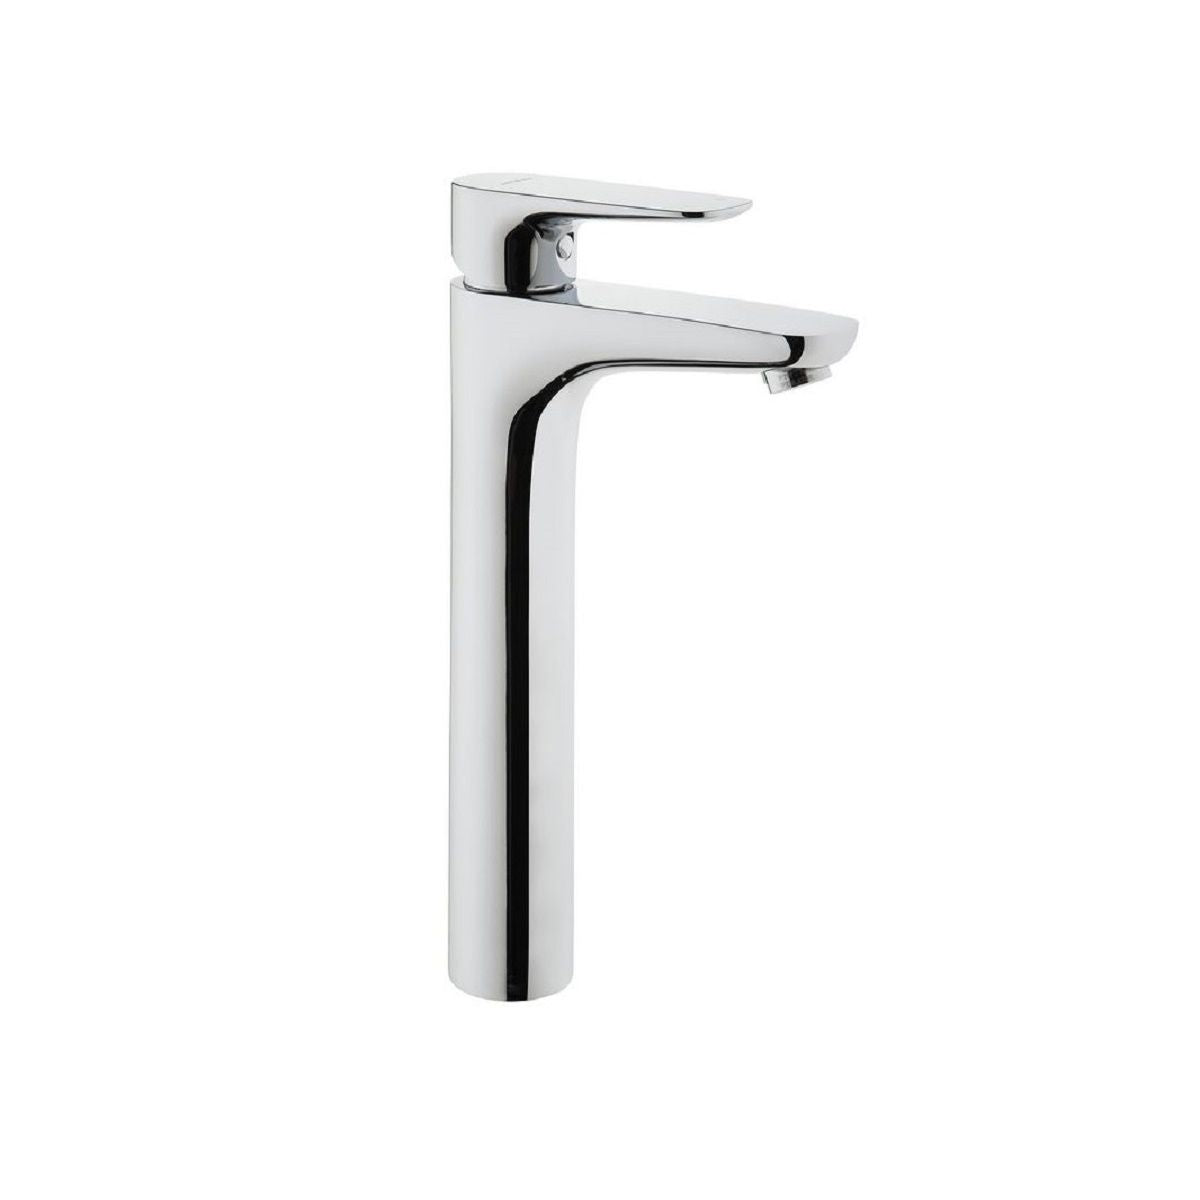 X-Line Tall Basin Mixer - Blue Sky Bathrooms Ltd